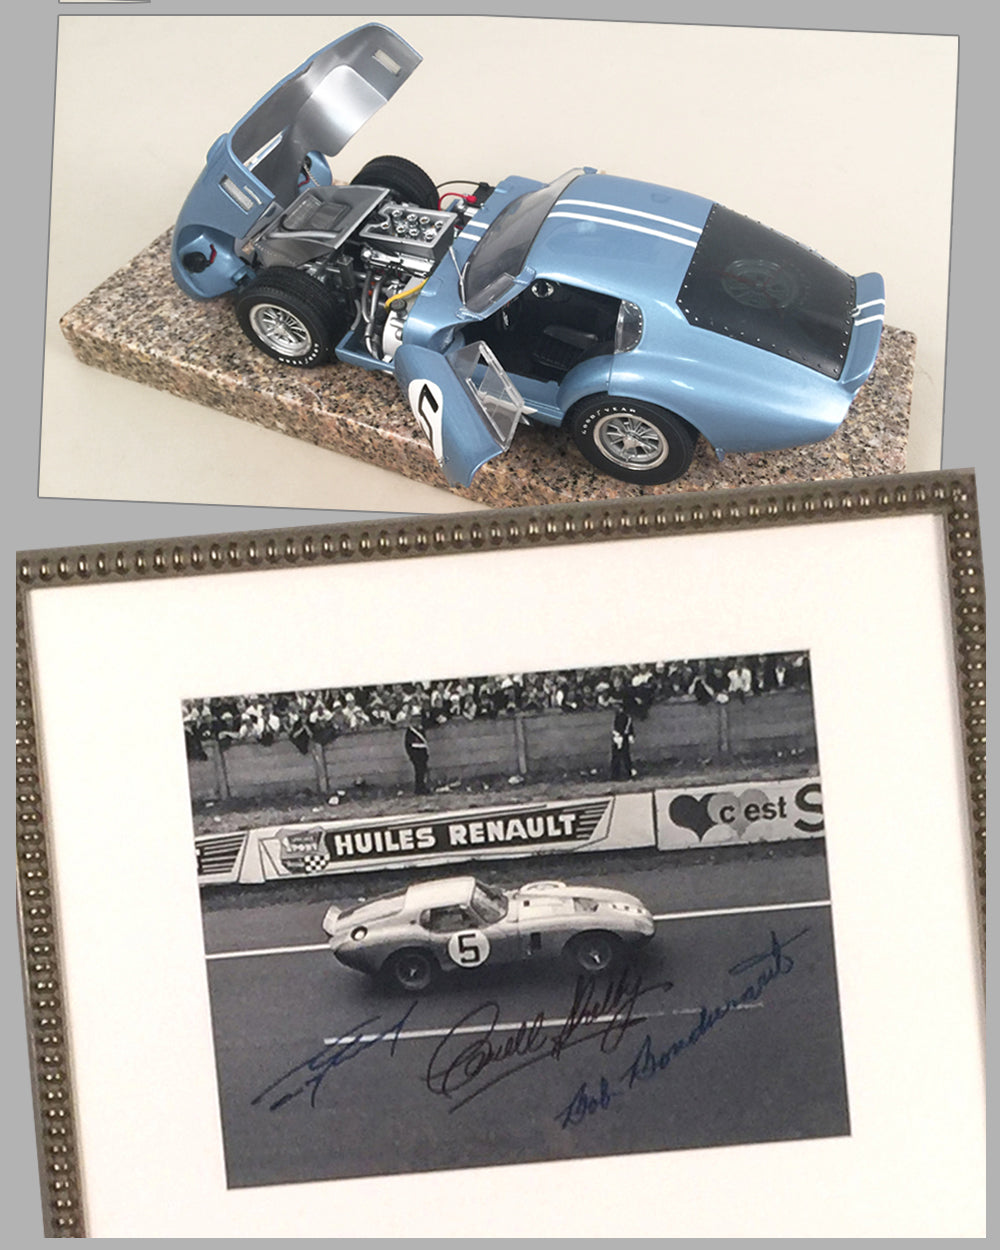 1964 - 24 Hrs of Le Mans autographed photo & Shelby Cobra Daytona model - Lot of 2